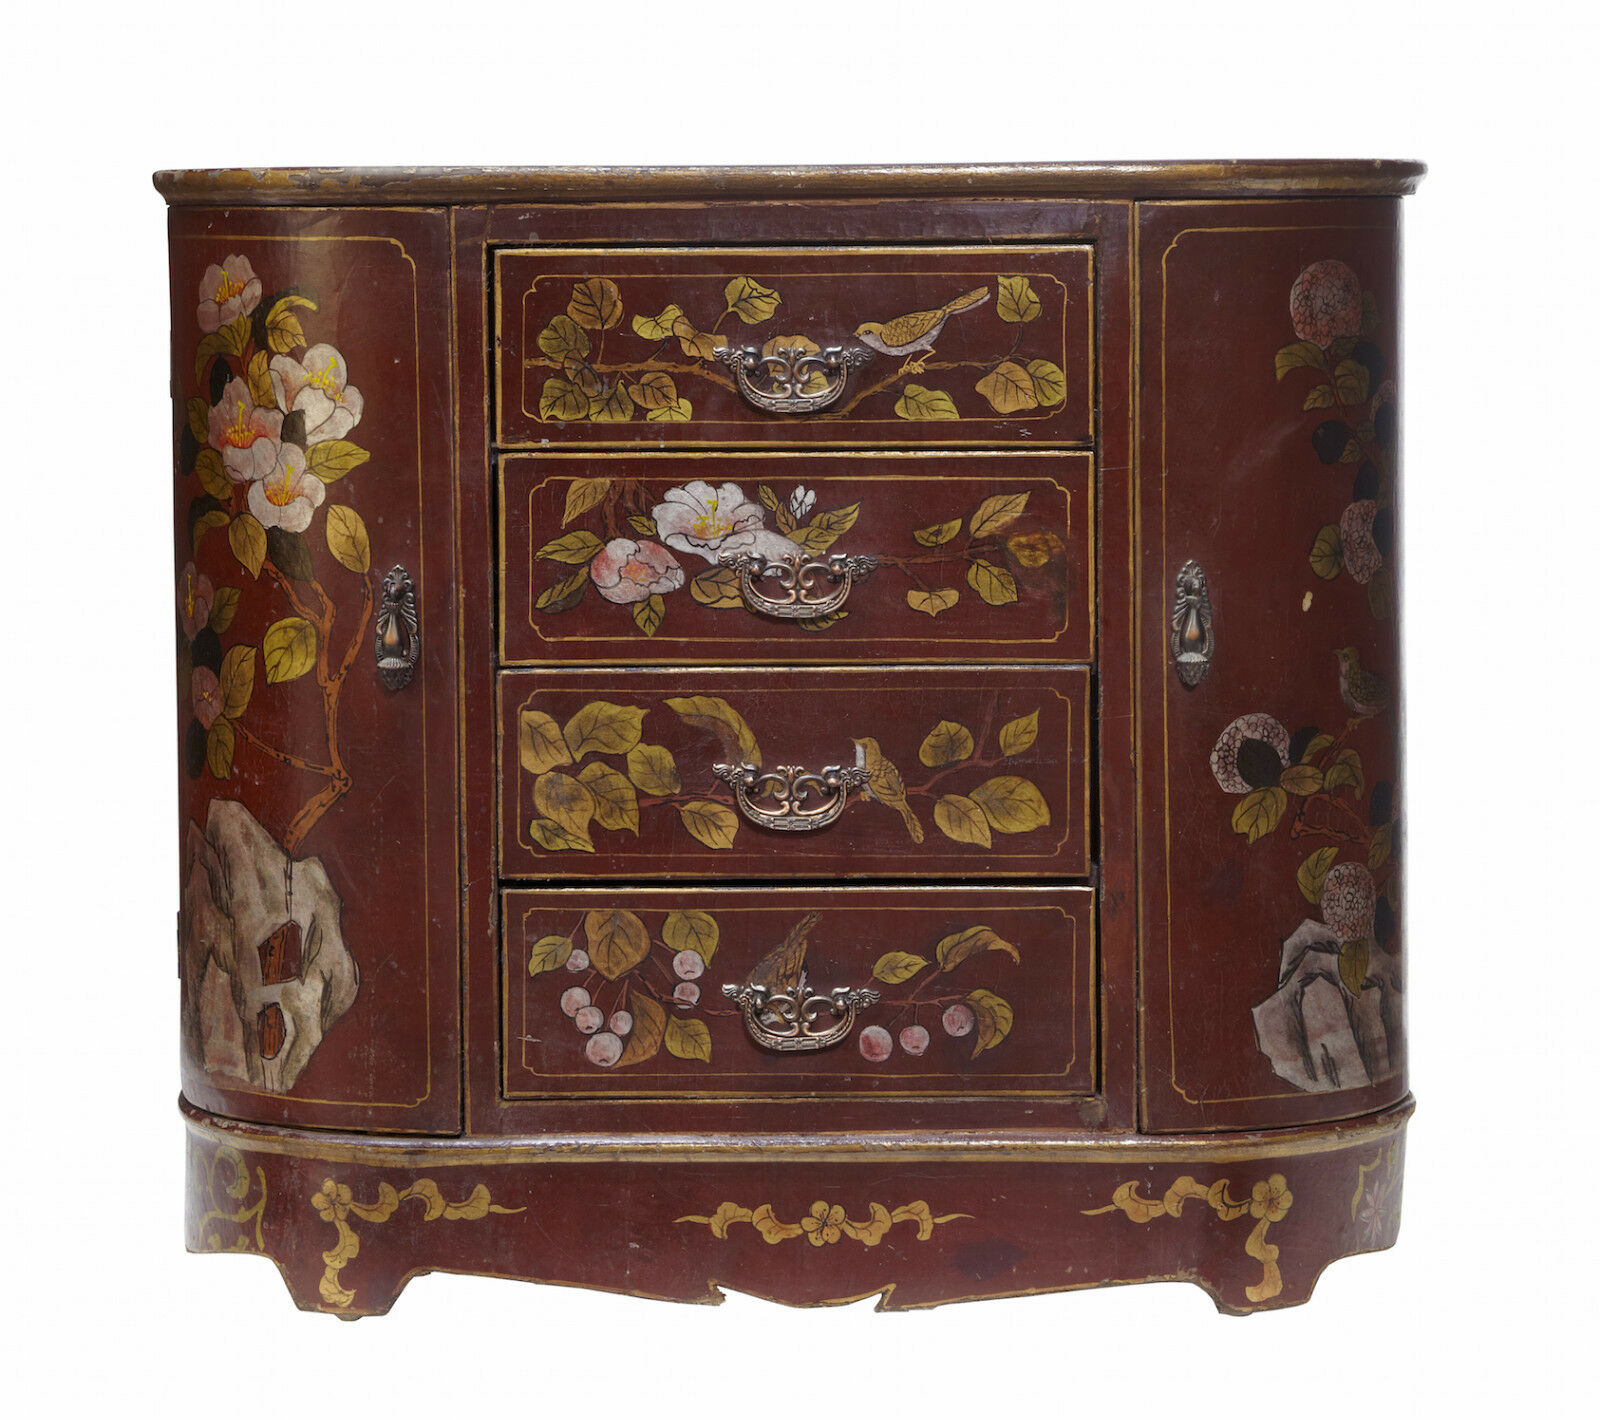 20Th Century Art Nouveau Inspired Lacquered Hand Painted Small Cabinet